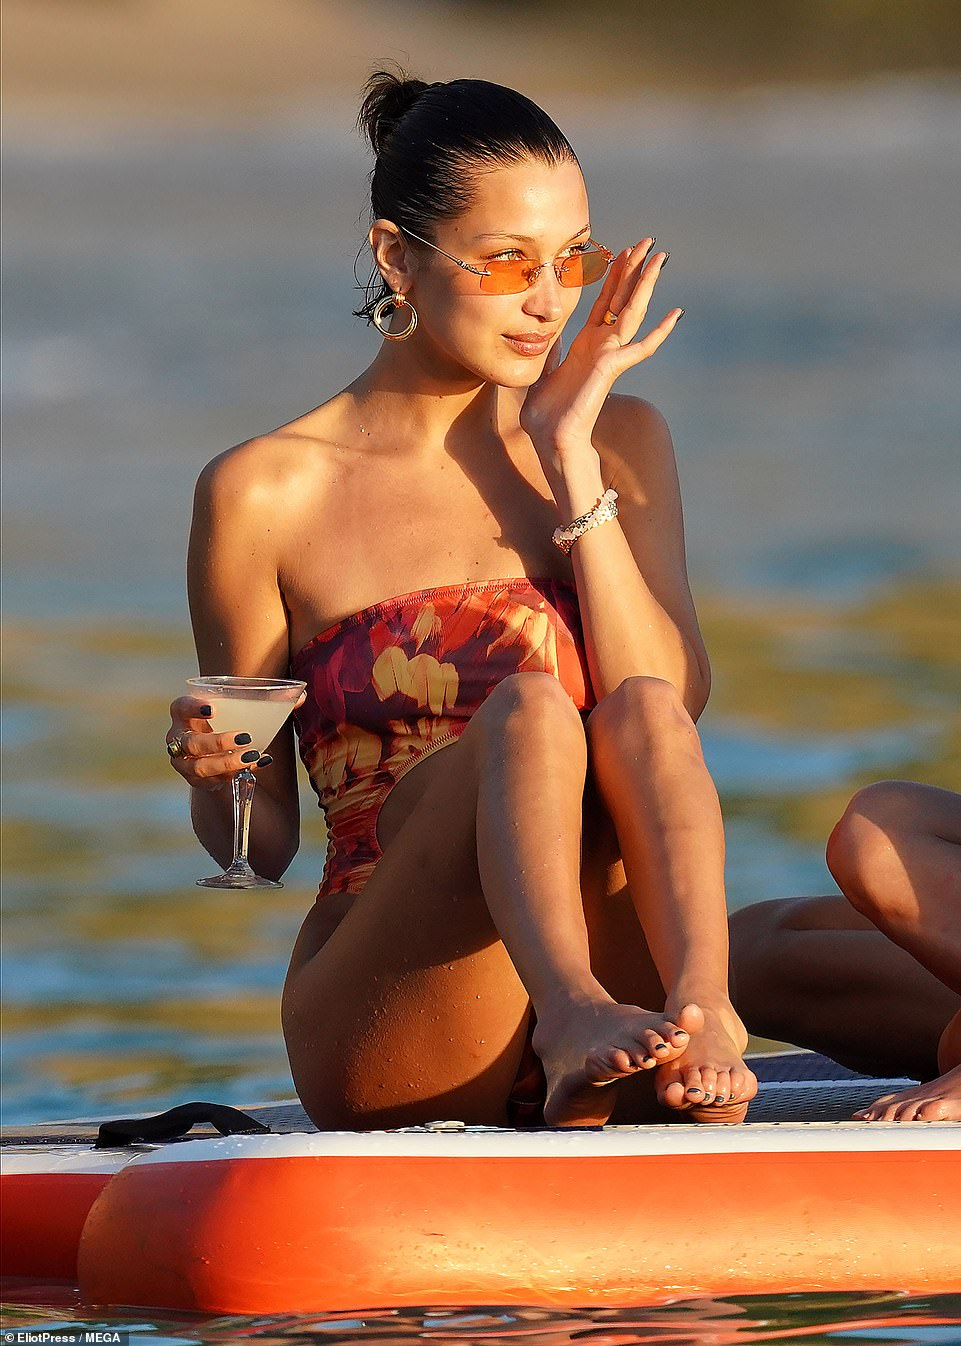 Sitting pretty:The supermodel, 23, accessorized with rectangular sunglasses featuring an orange tint as well as some hoop earrings